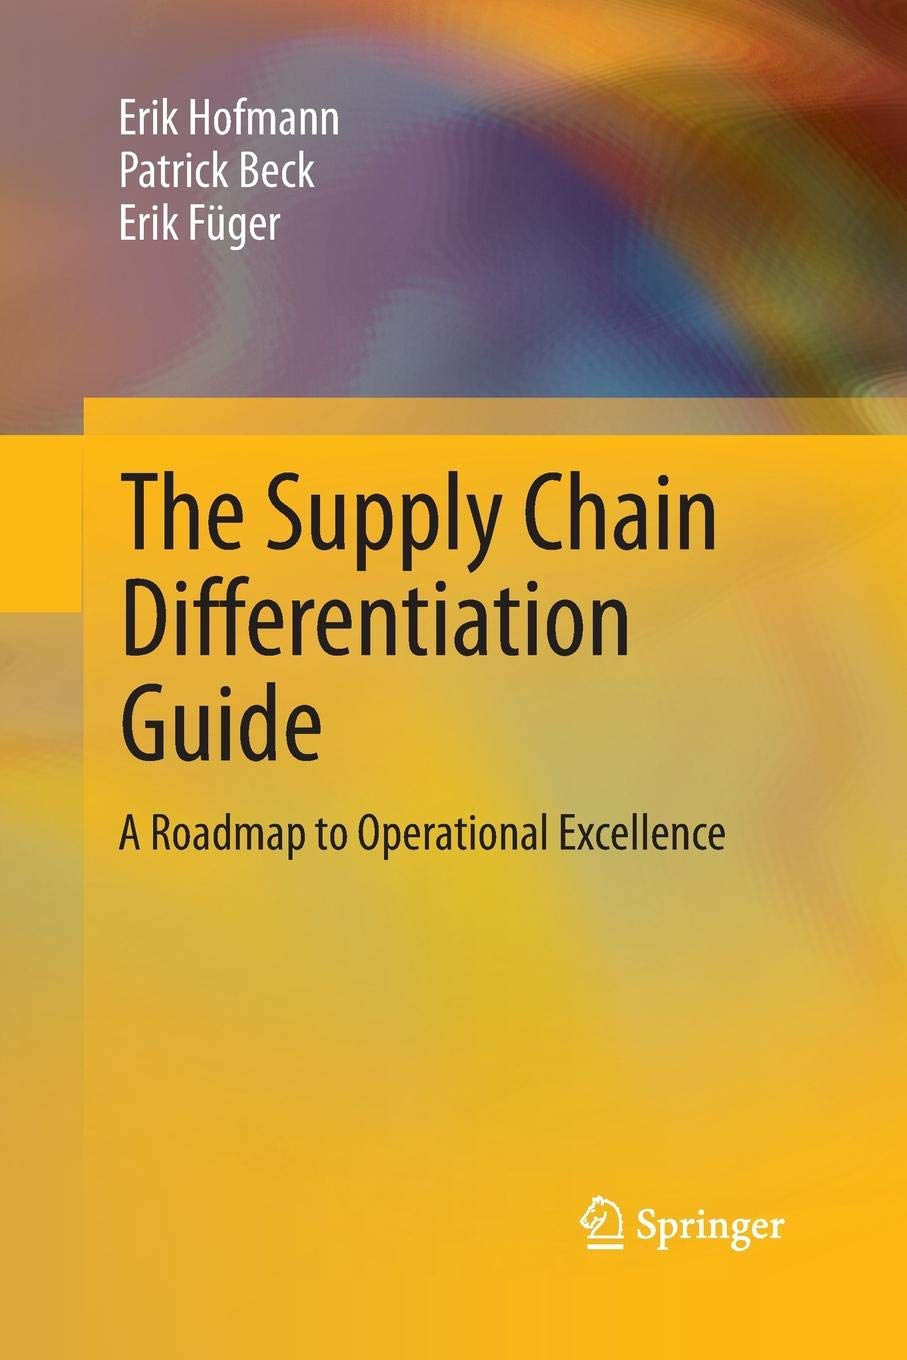 The Supply Chain Differentiation Guide: A Roadmap to Operational Excellence